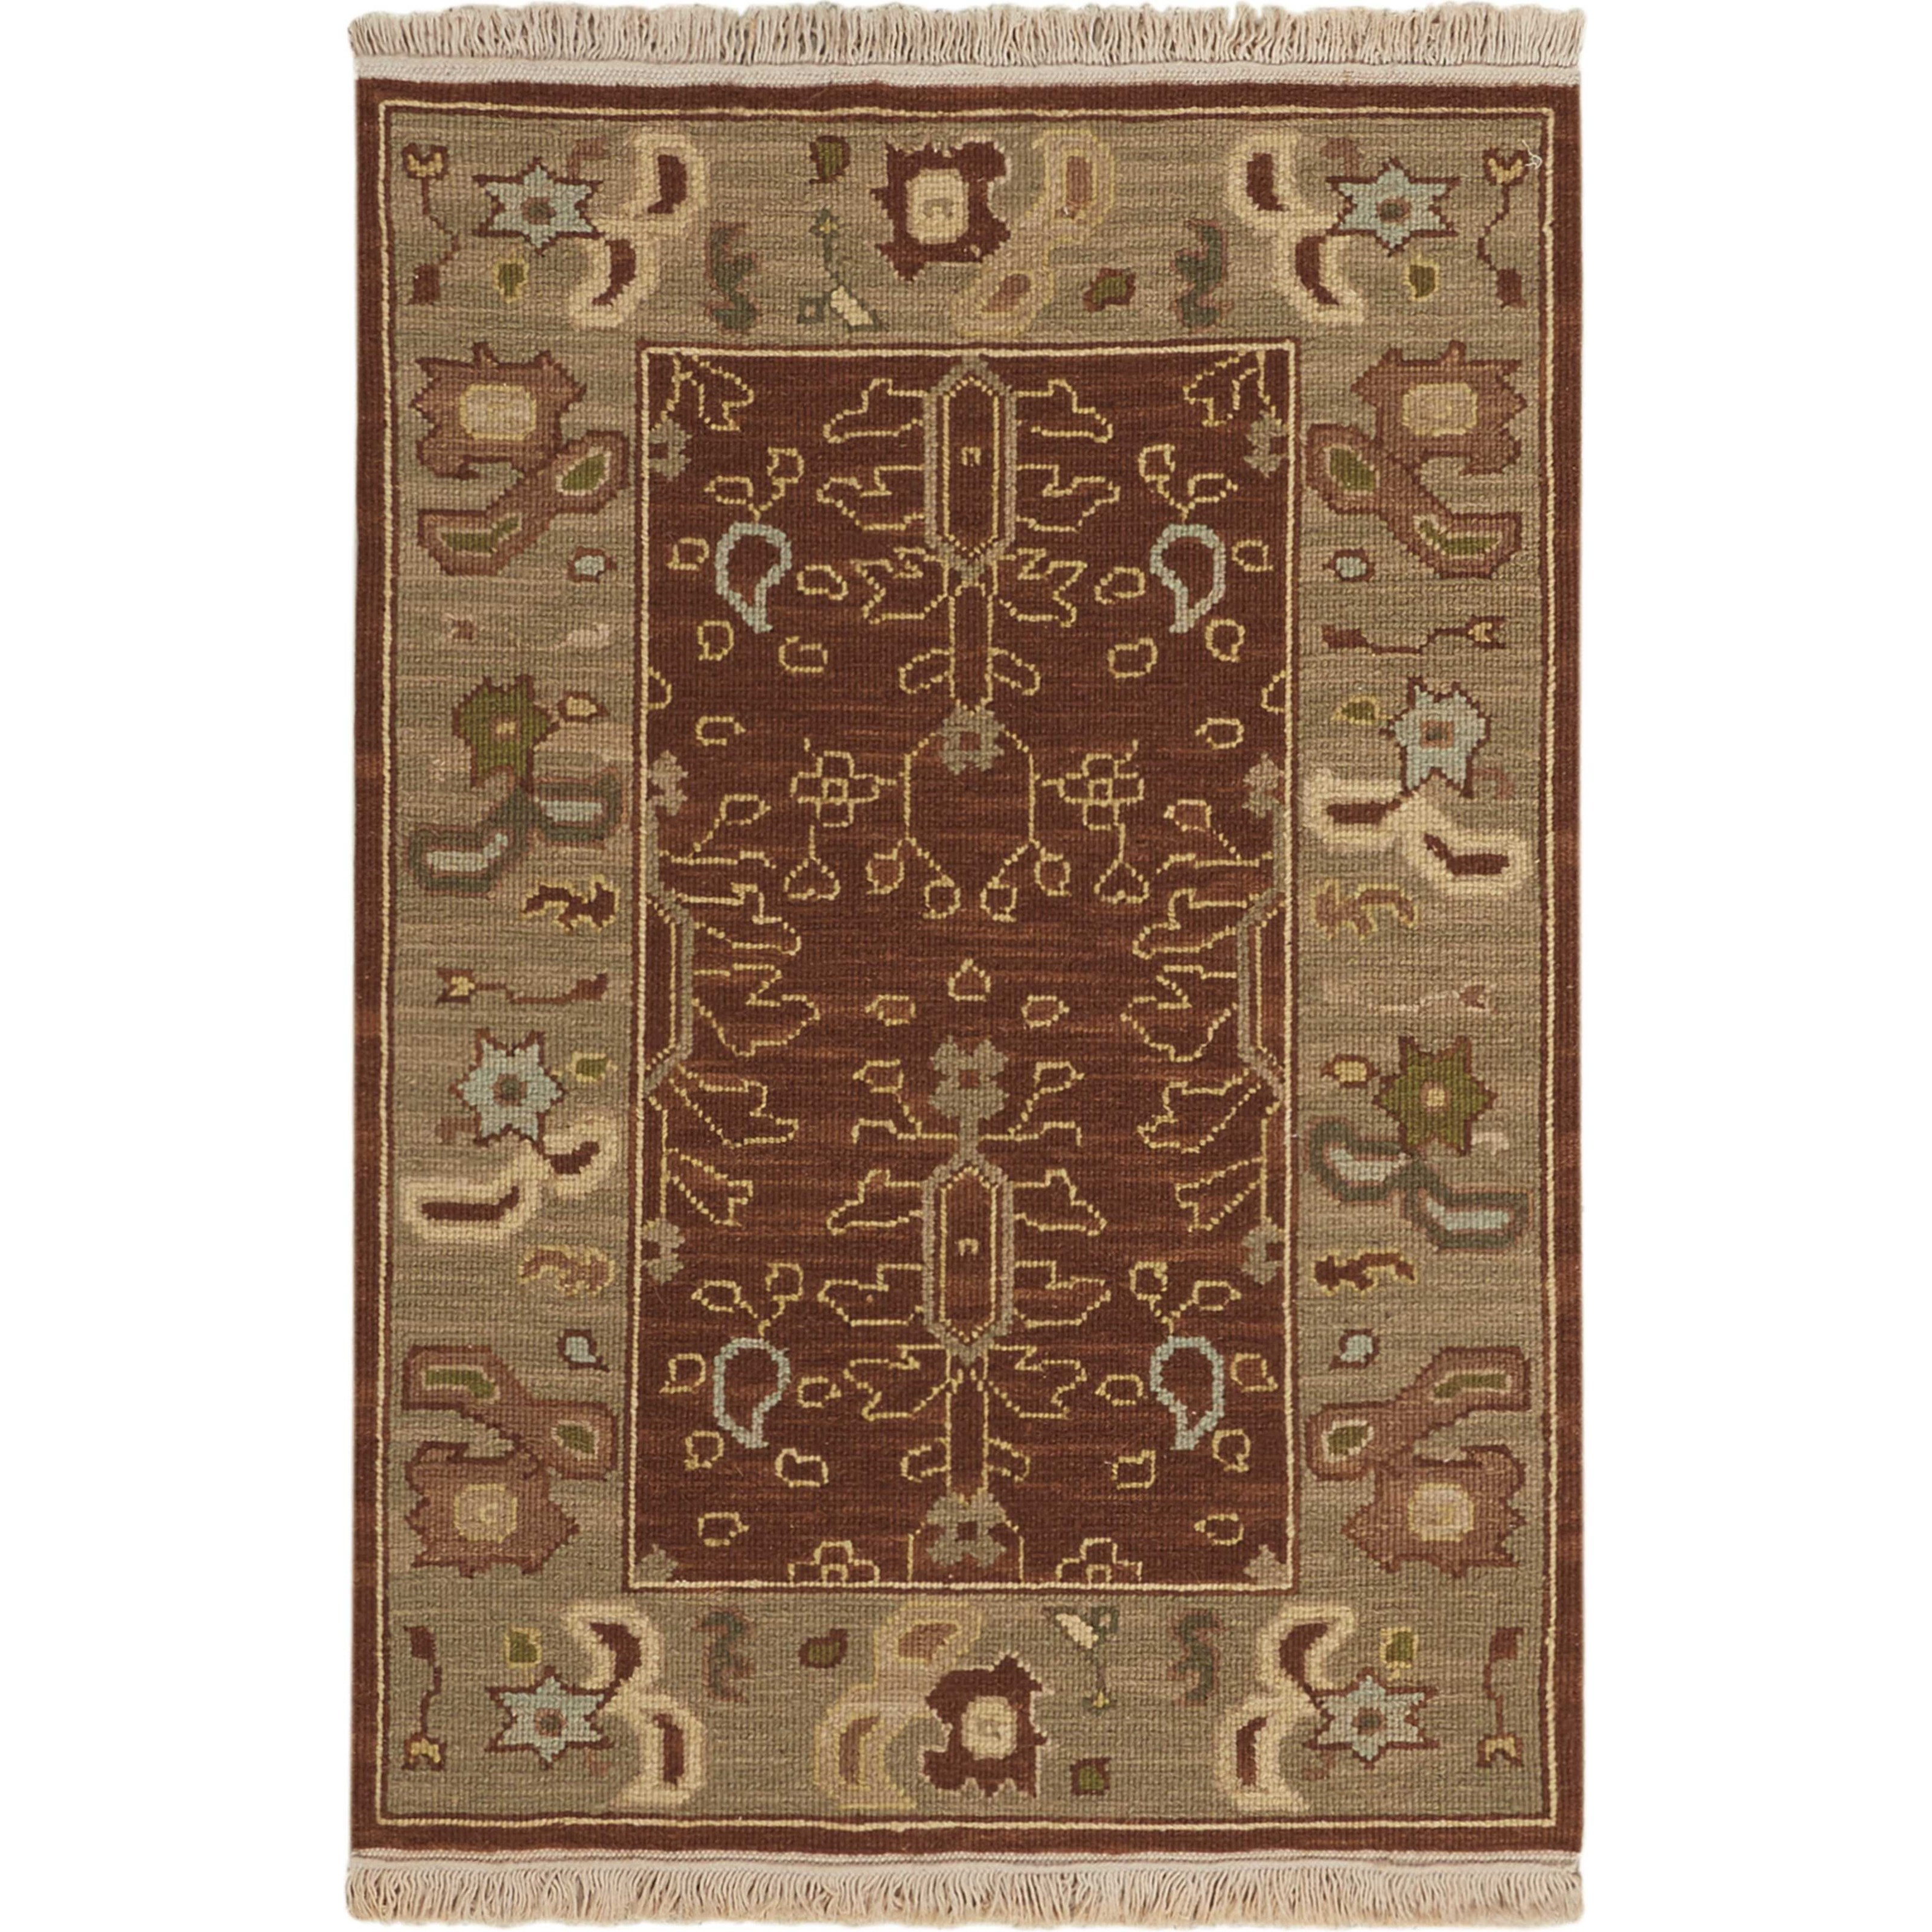 2' x 3' Brown Rectangle Rug